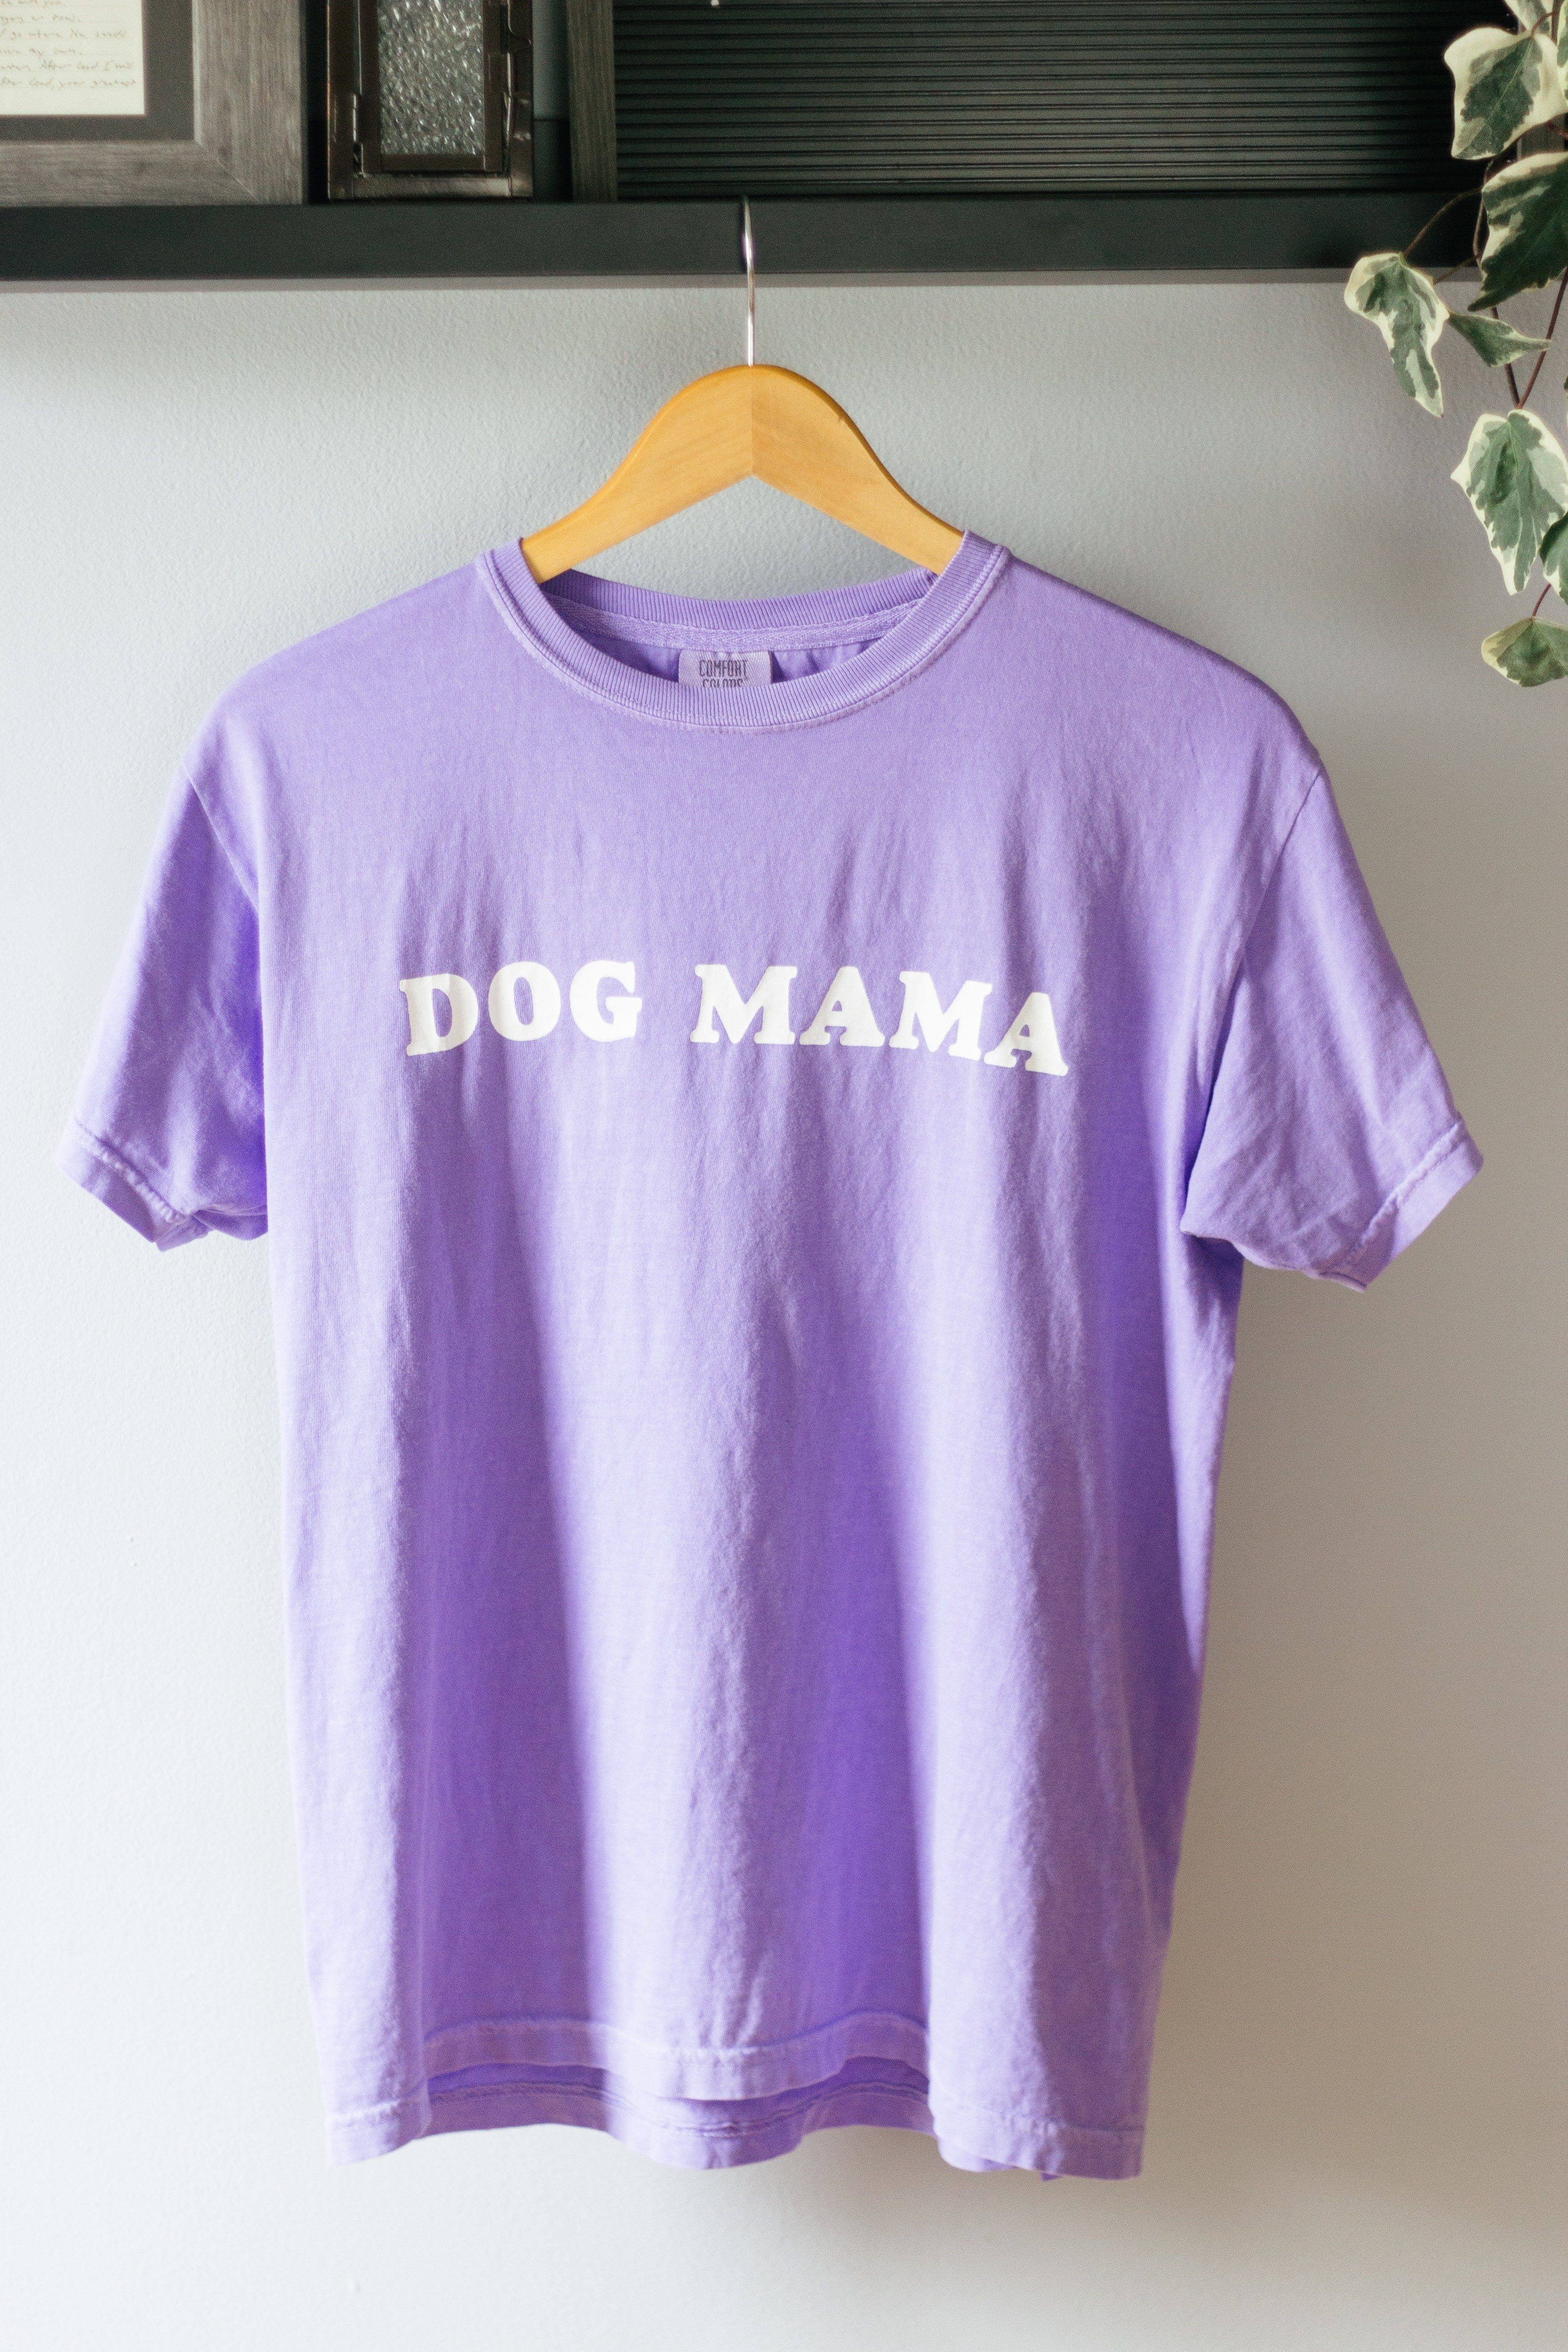 Create your very own Dog Mama screen printed tshirt with